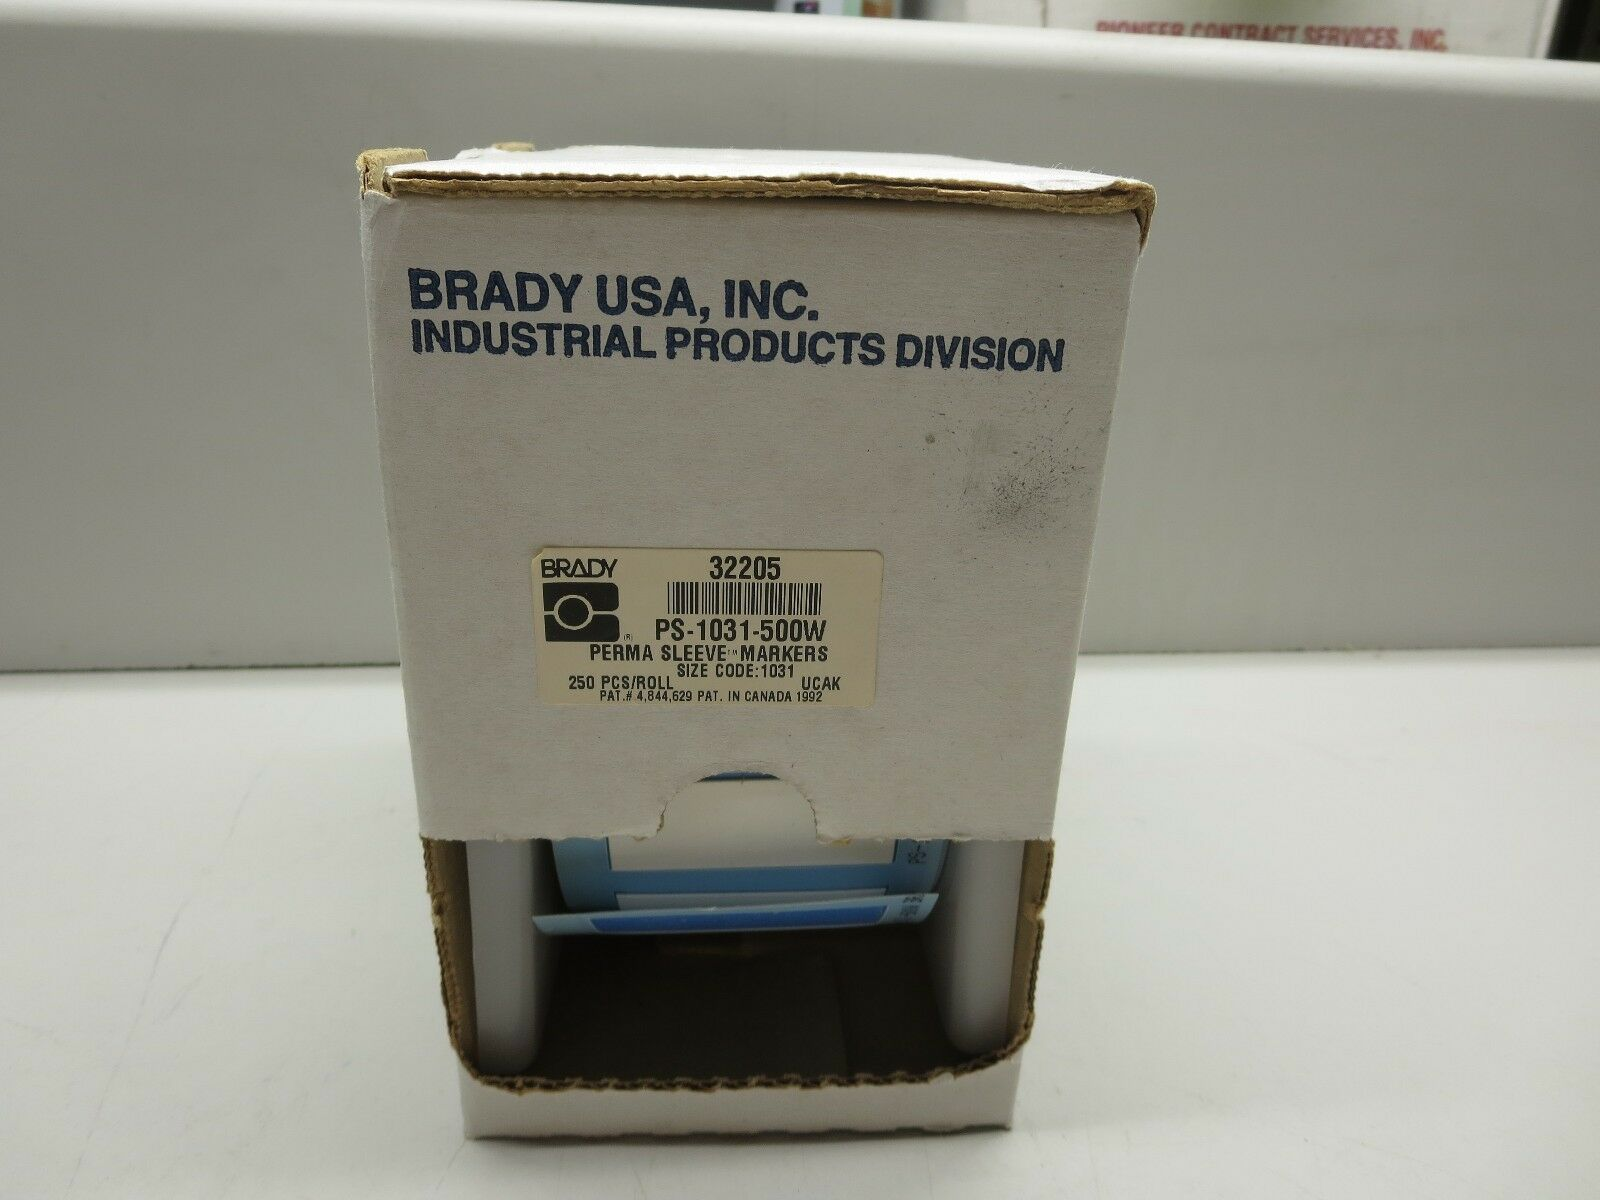 Brady, 32205 (PS-1031-500W), Perma Sleeve Markers, Size  1031, Partial Roll